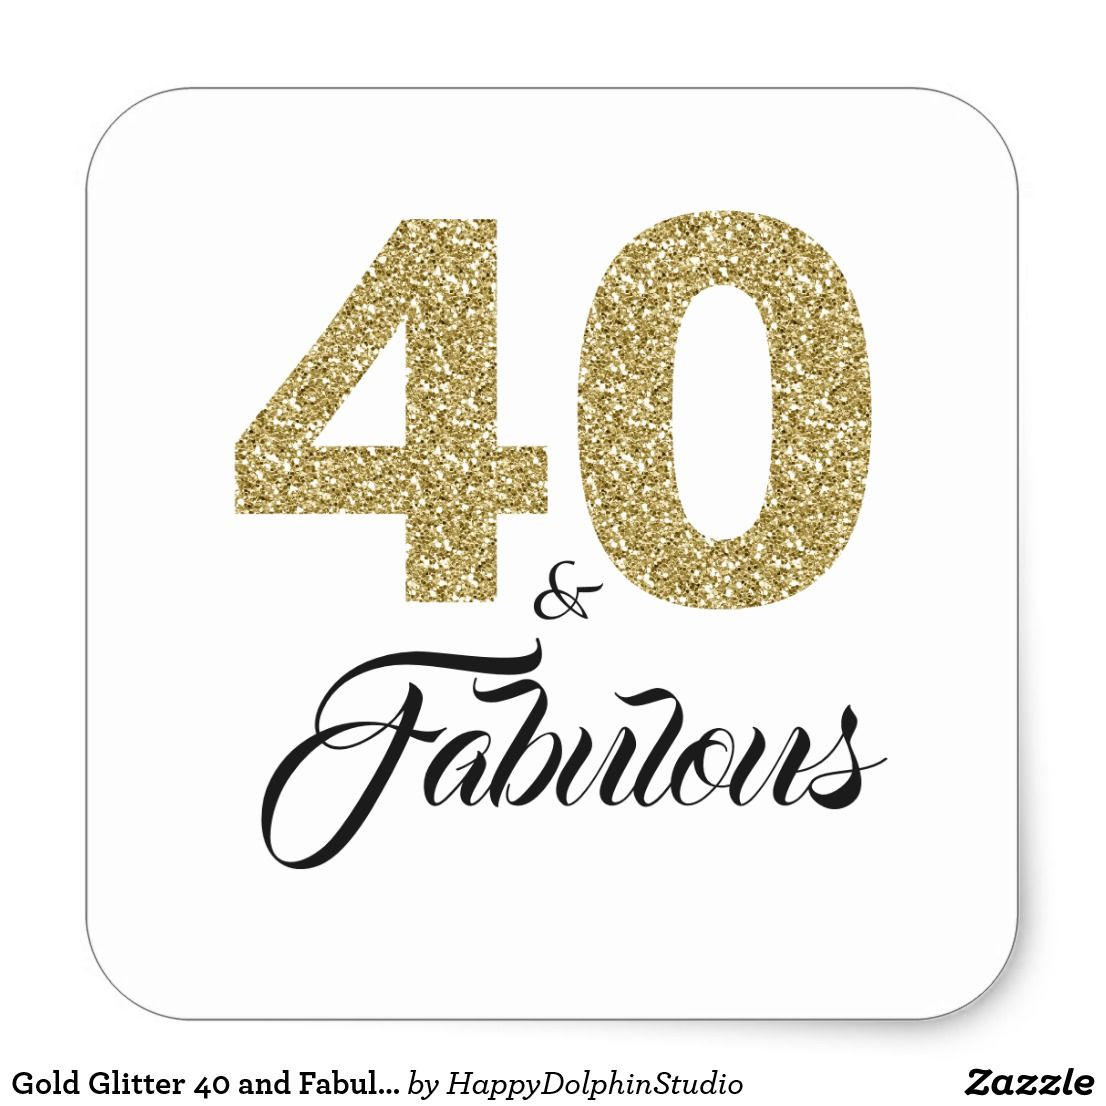 Gold Glitter 40 And Fabulous 40th Birthday Square Sticker Zazzle Com In 2021 40th Birthday Quotes 40th Birthday Happy 40th Birthday